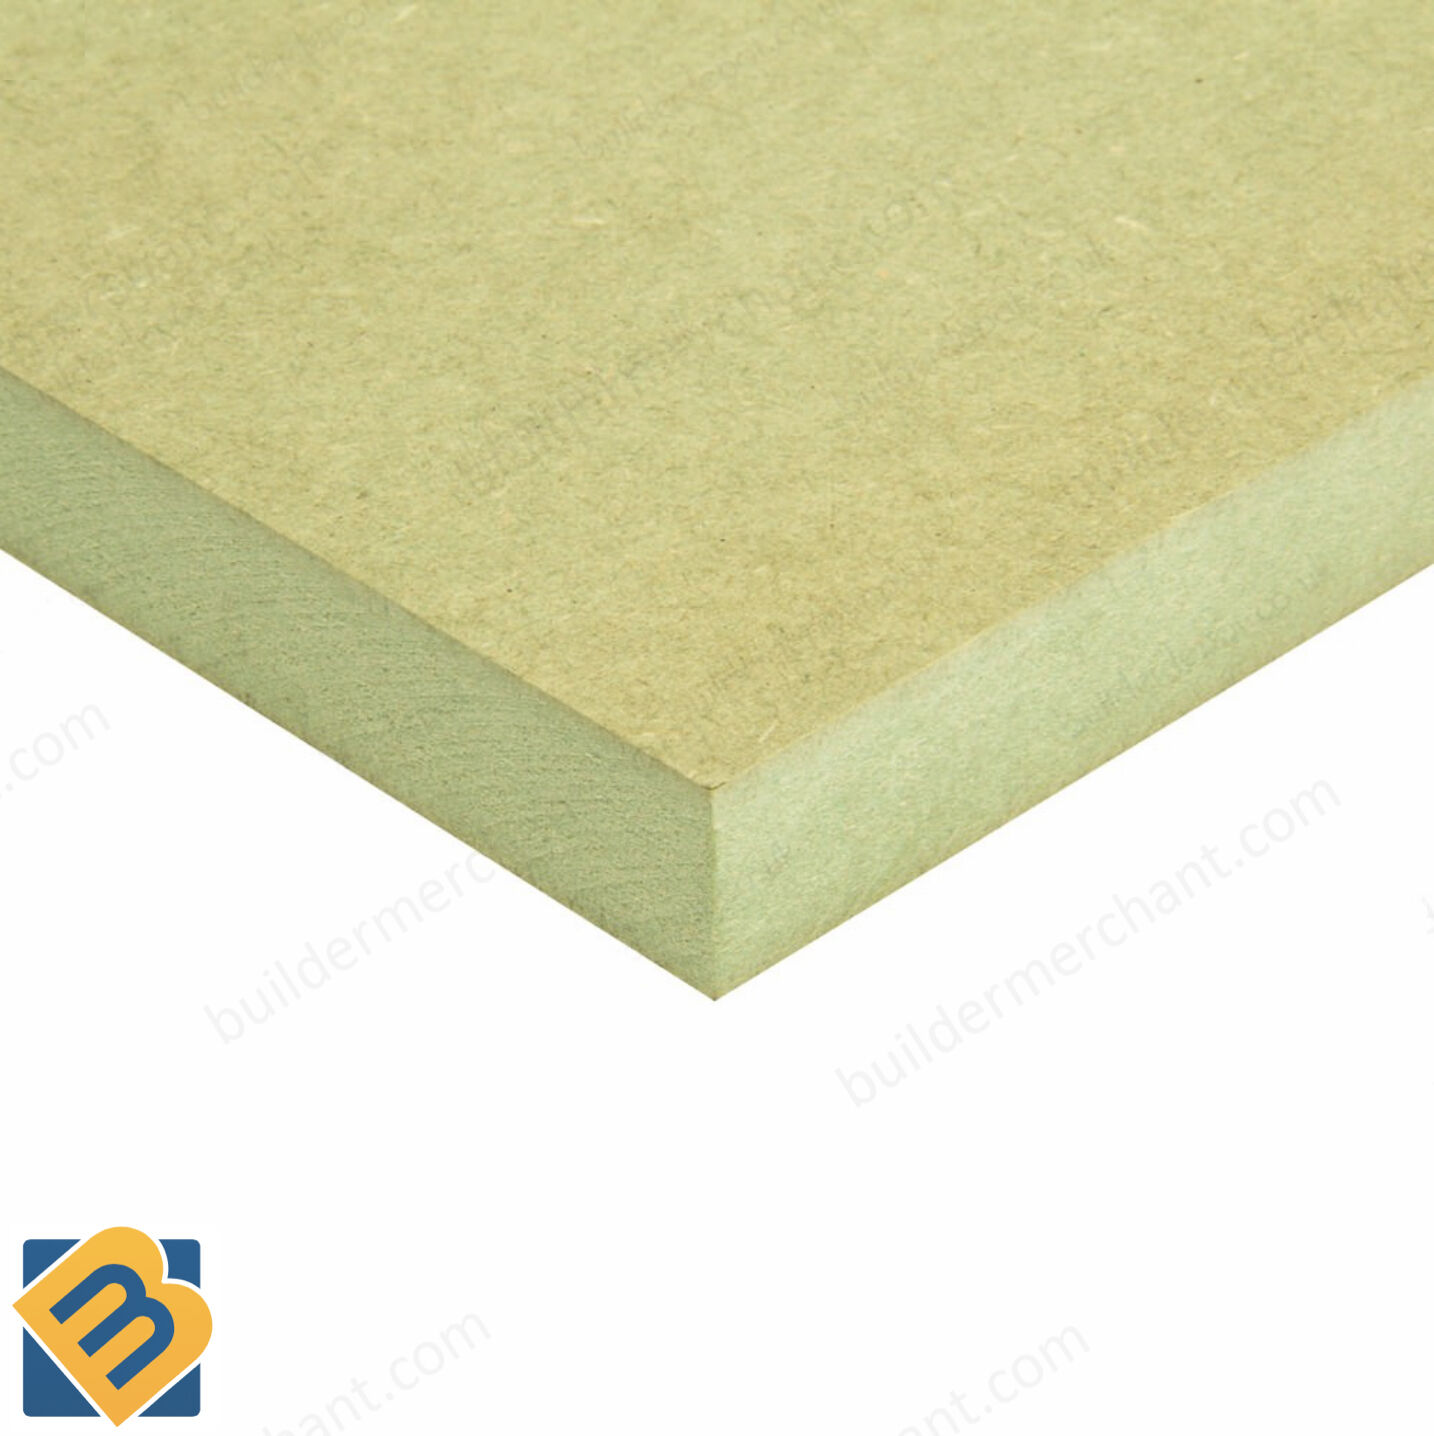 Mdf 22mm Details About Mdf Sheets Moisture Resistant Mdf Medium Density Fibreboard Mr Mdf